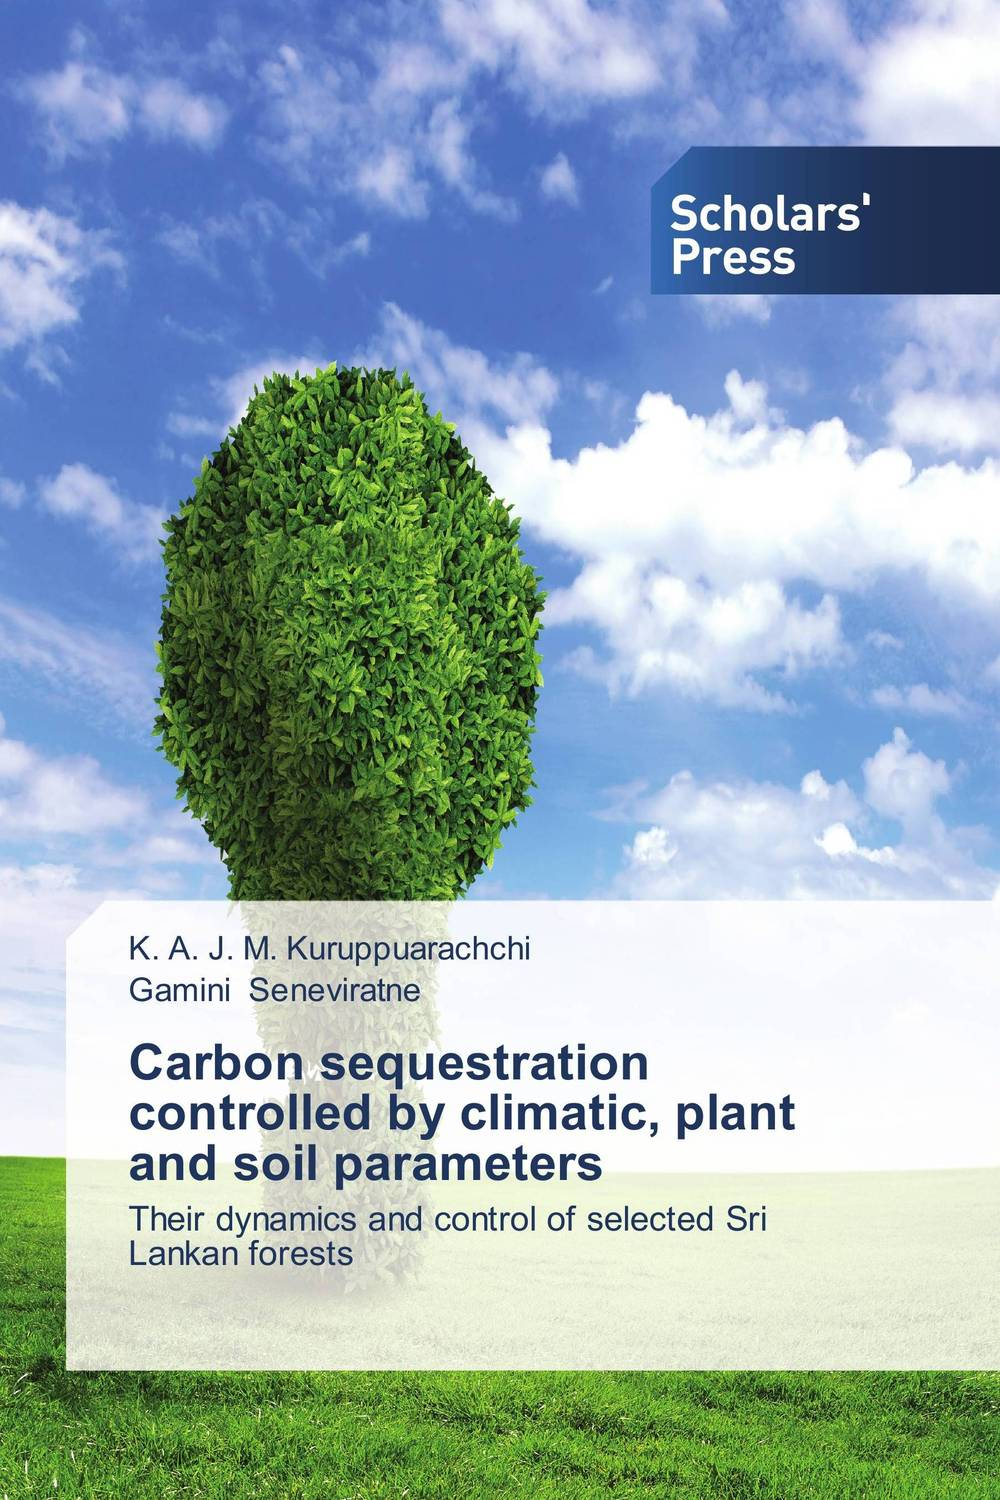 Carbon sequestration controlled by climatic, plant and soil parameters sanat kumar das and achuthan jayaraman atmospheric radiative forcing